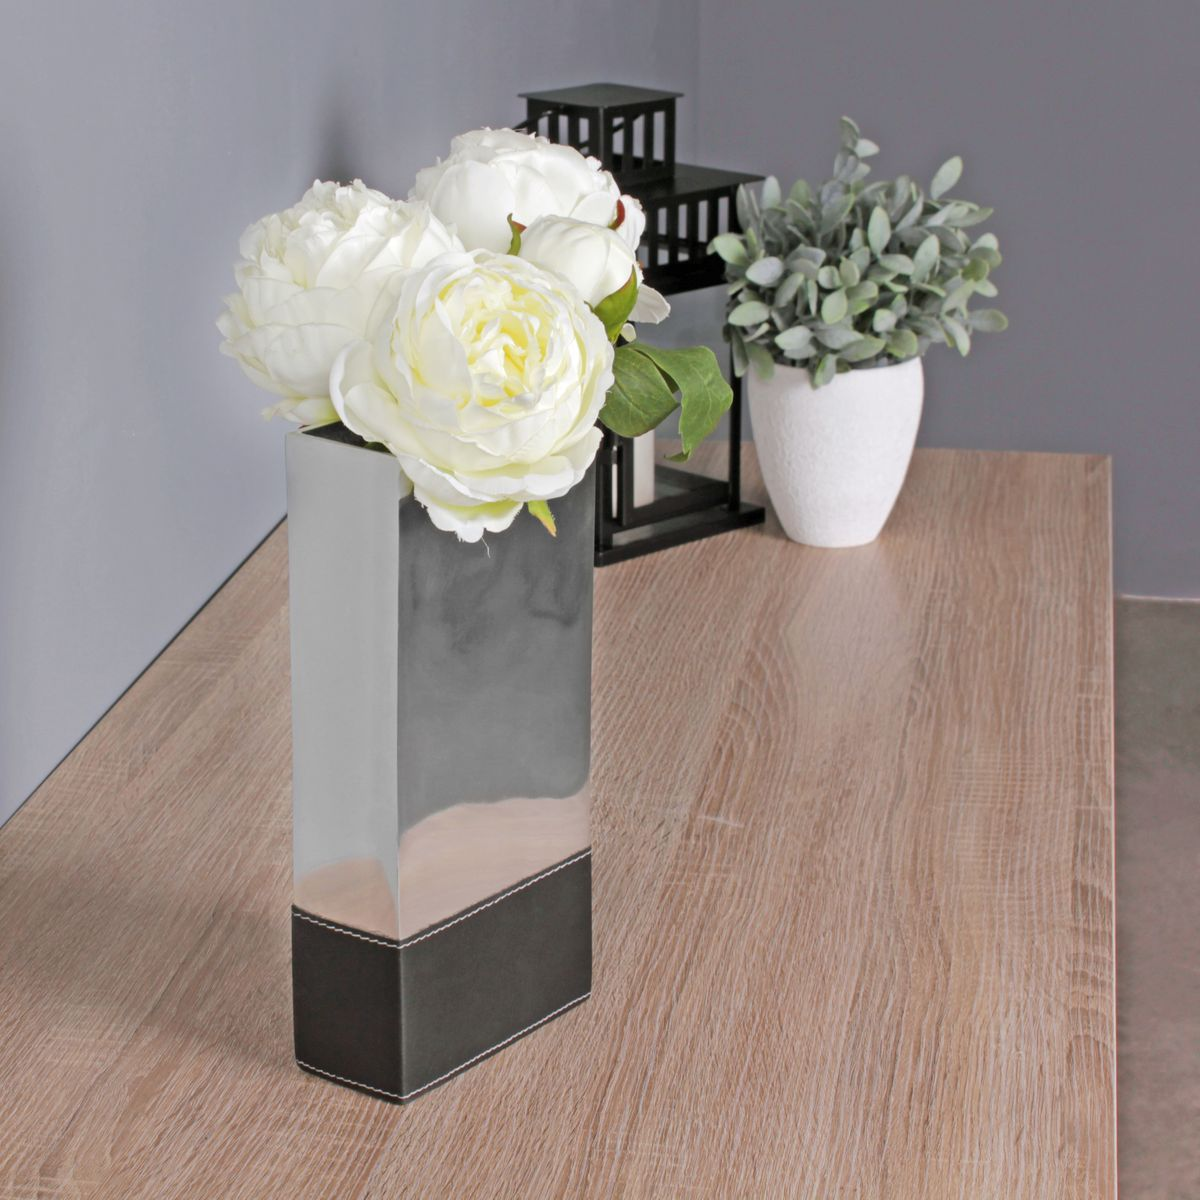 vase aluminium blumenvase gro modern vasen deko metall silber hohe dekovase alu ebay. Black Bedroom Furniture Sets. Home Design Ideas